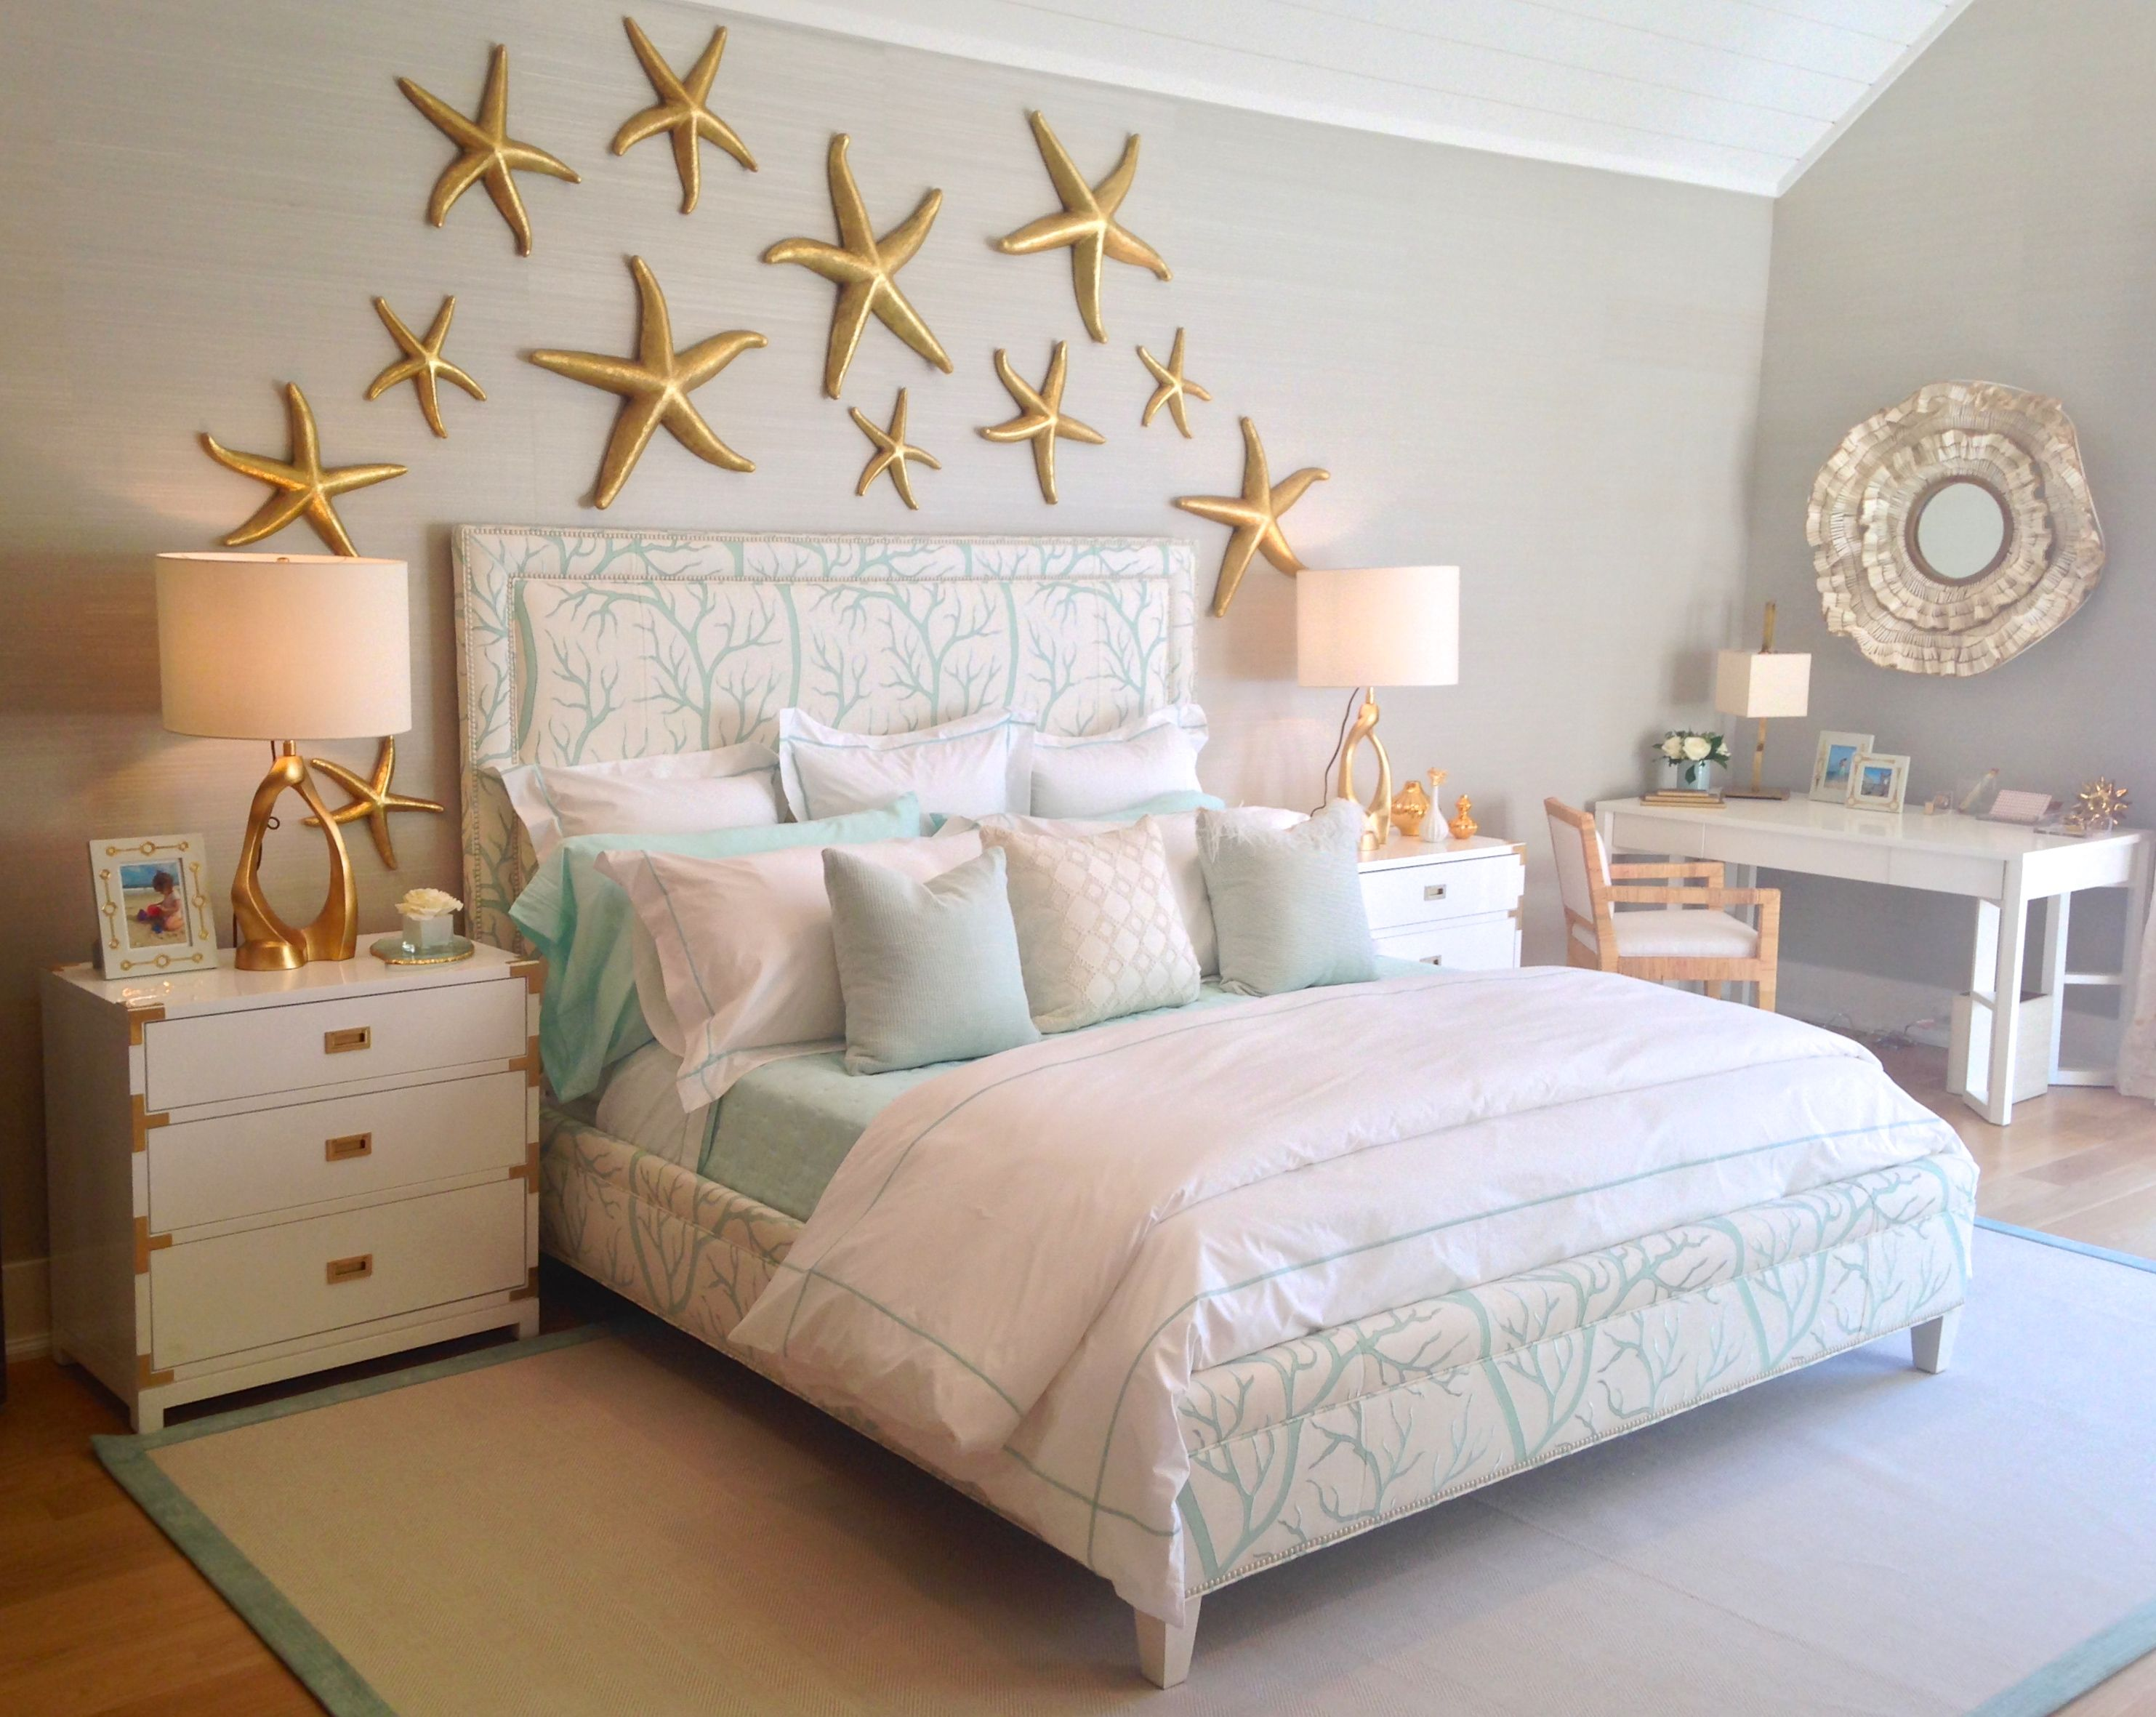 15 Best Images About Turquoise Room Decorations | Pinterest | Coral ...